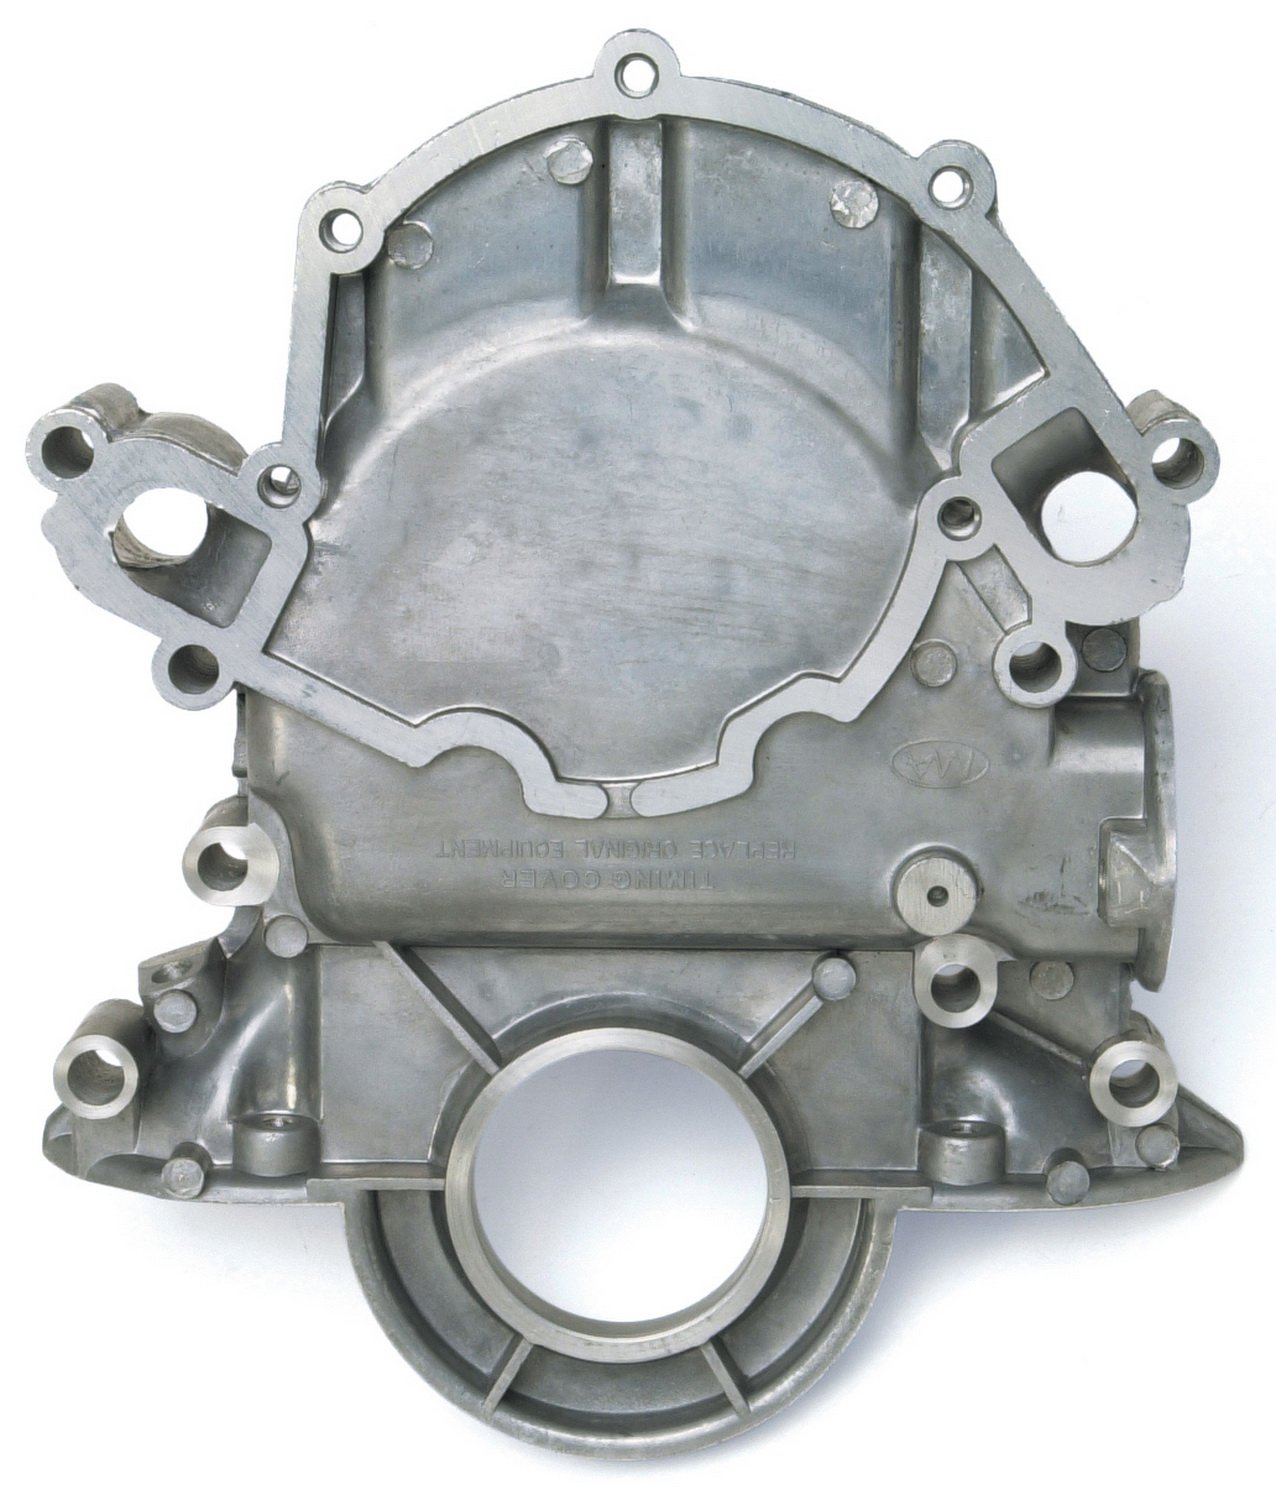 Edelbrock 4250 Aluminum Timing Cover by Edelbrock (Image #1)